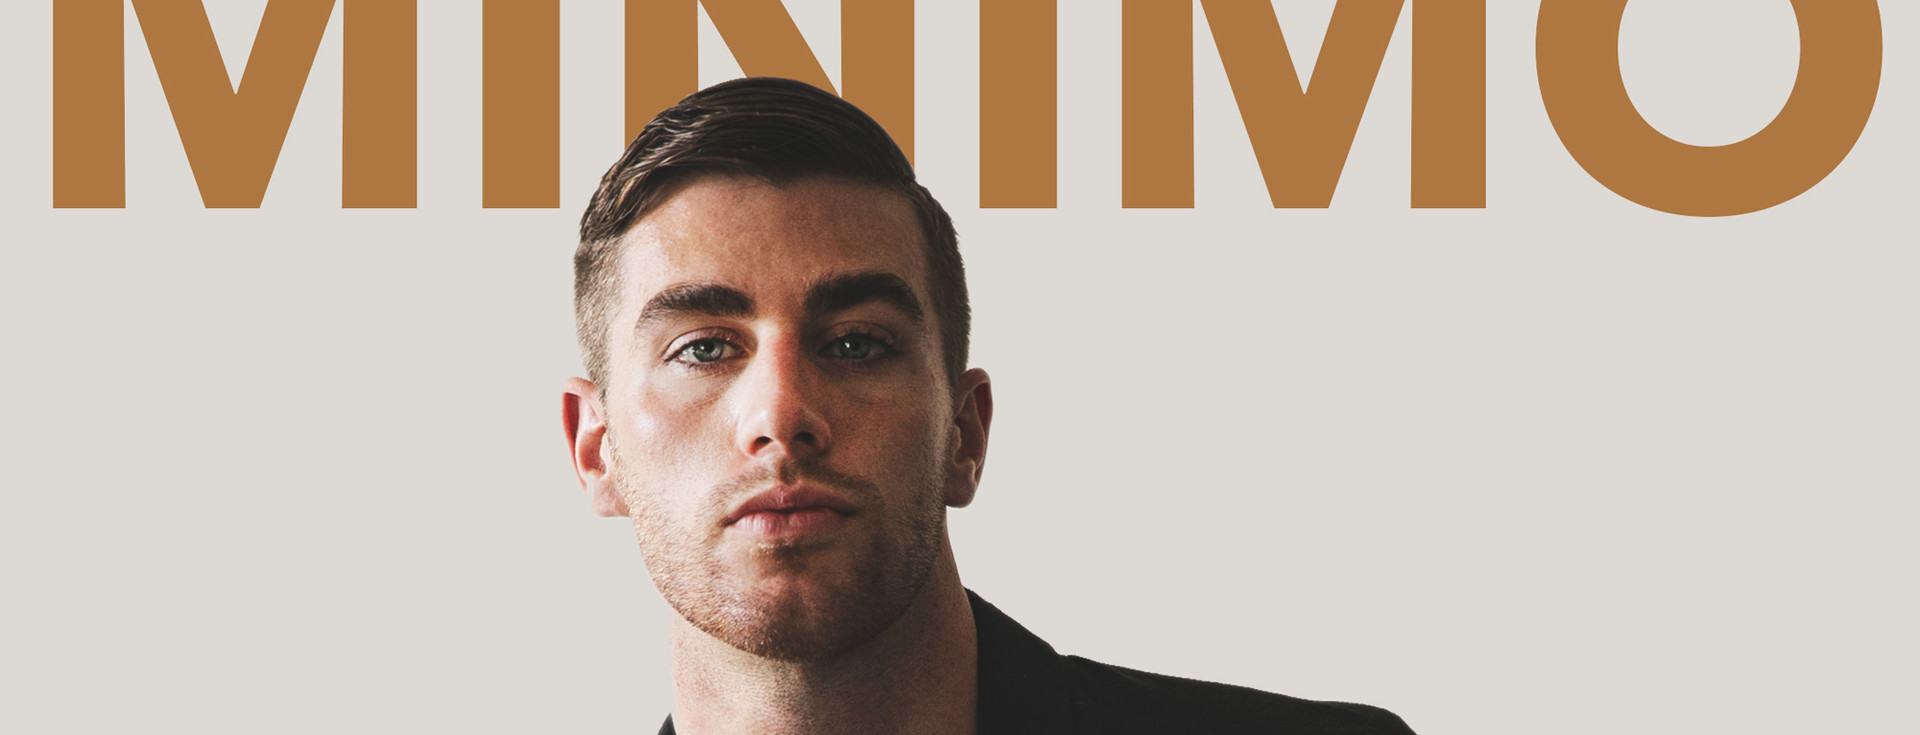 Minimo Magazine Online Exclusive: Jay Gould by Andrew Madrid